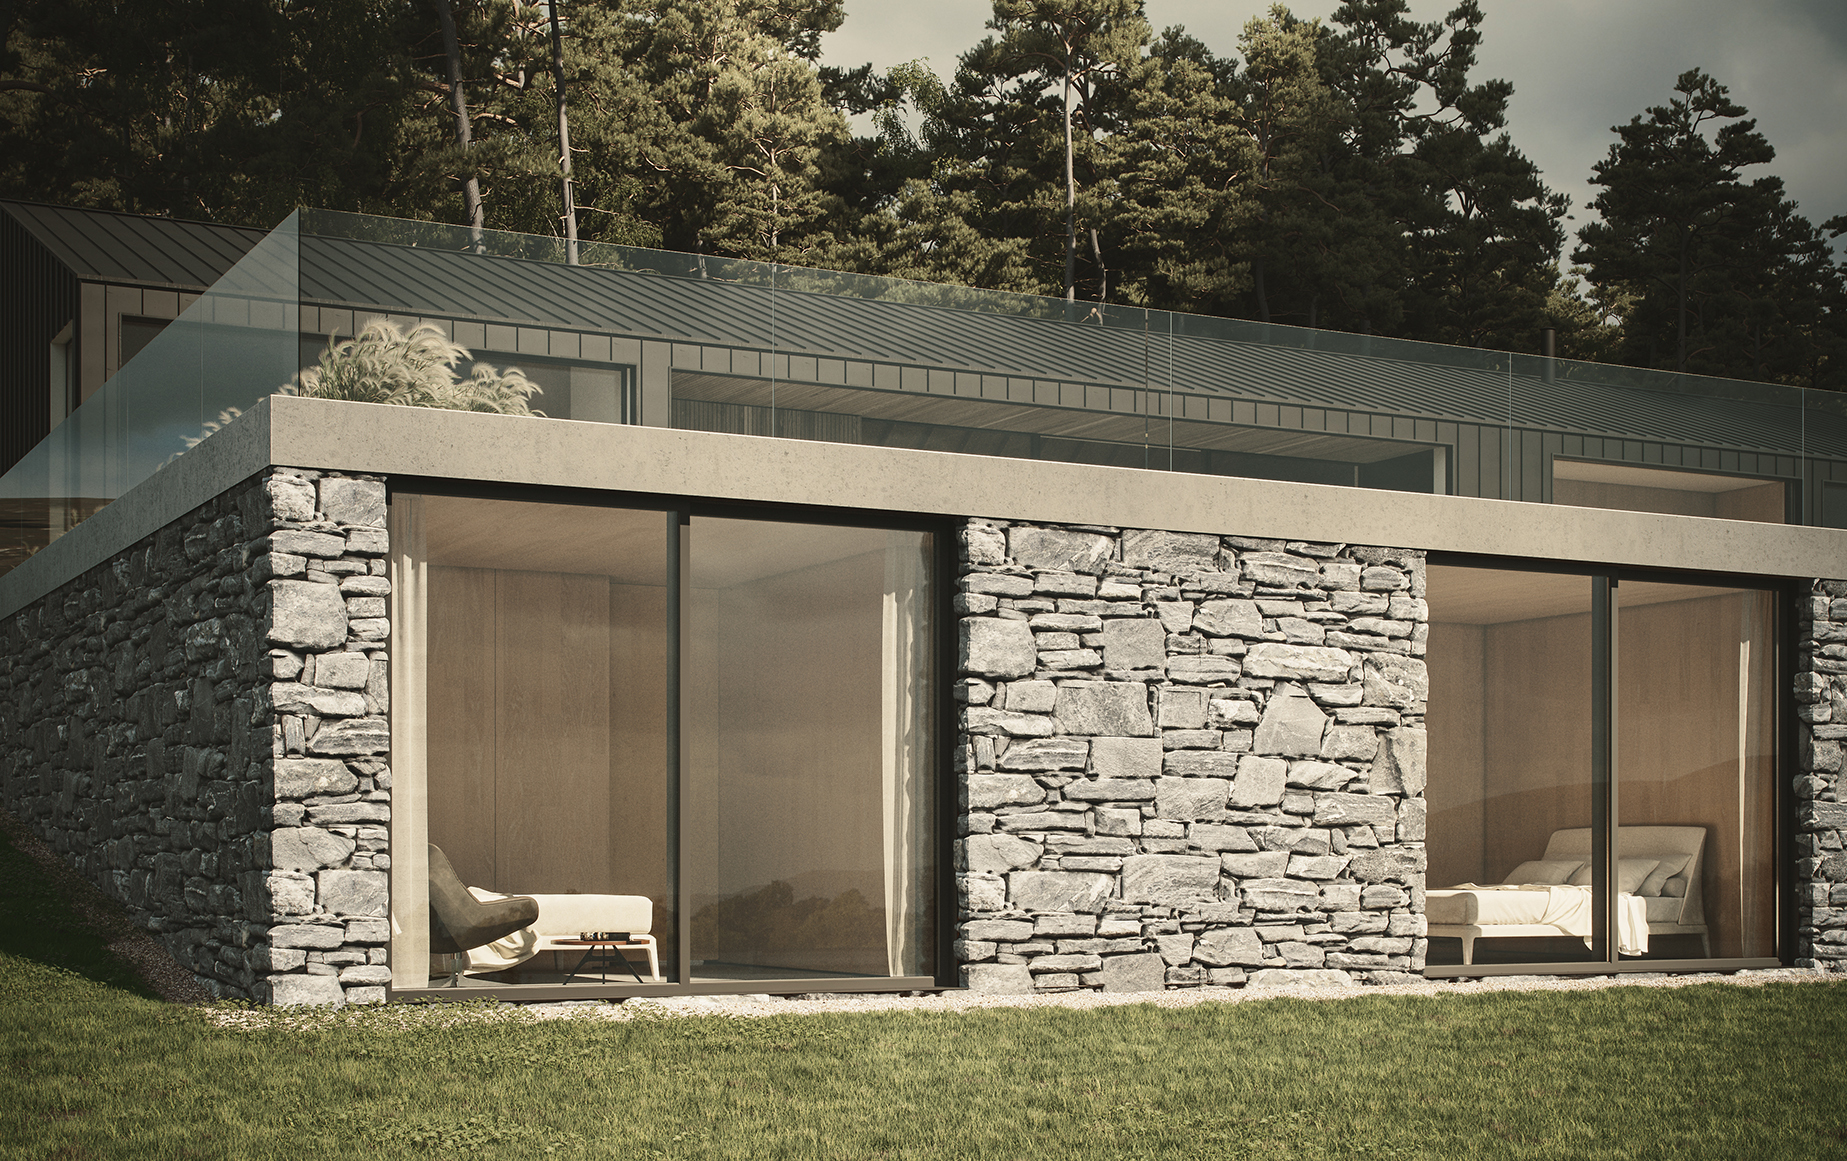 Brown-and-Brown-Cairngorms-Architects-Courtyard-CORNER-c_2021-09-29-111427_emgj.jpg